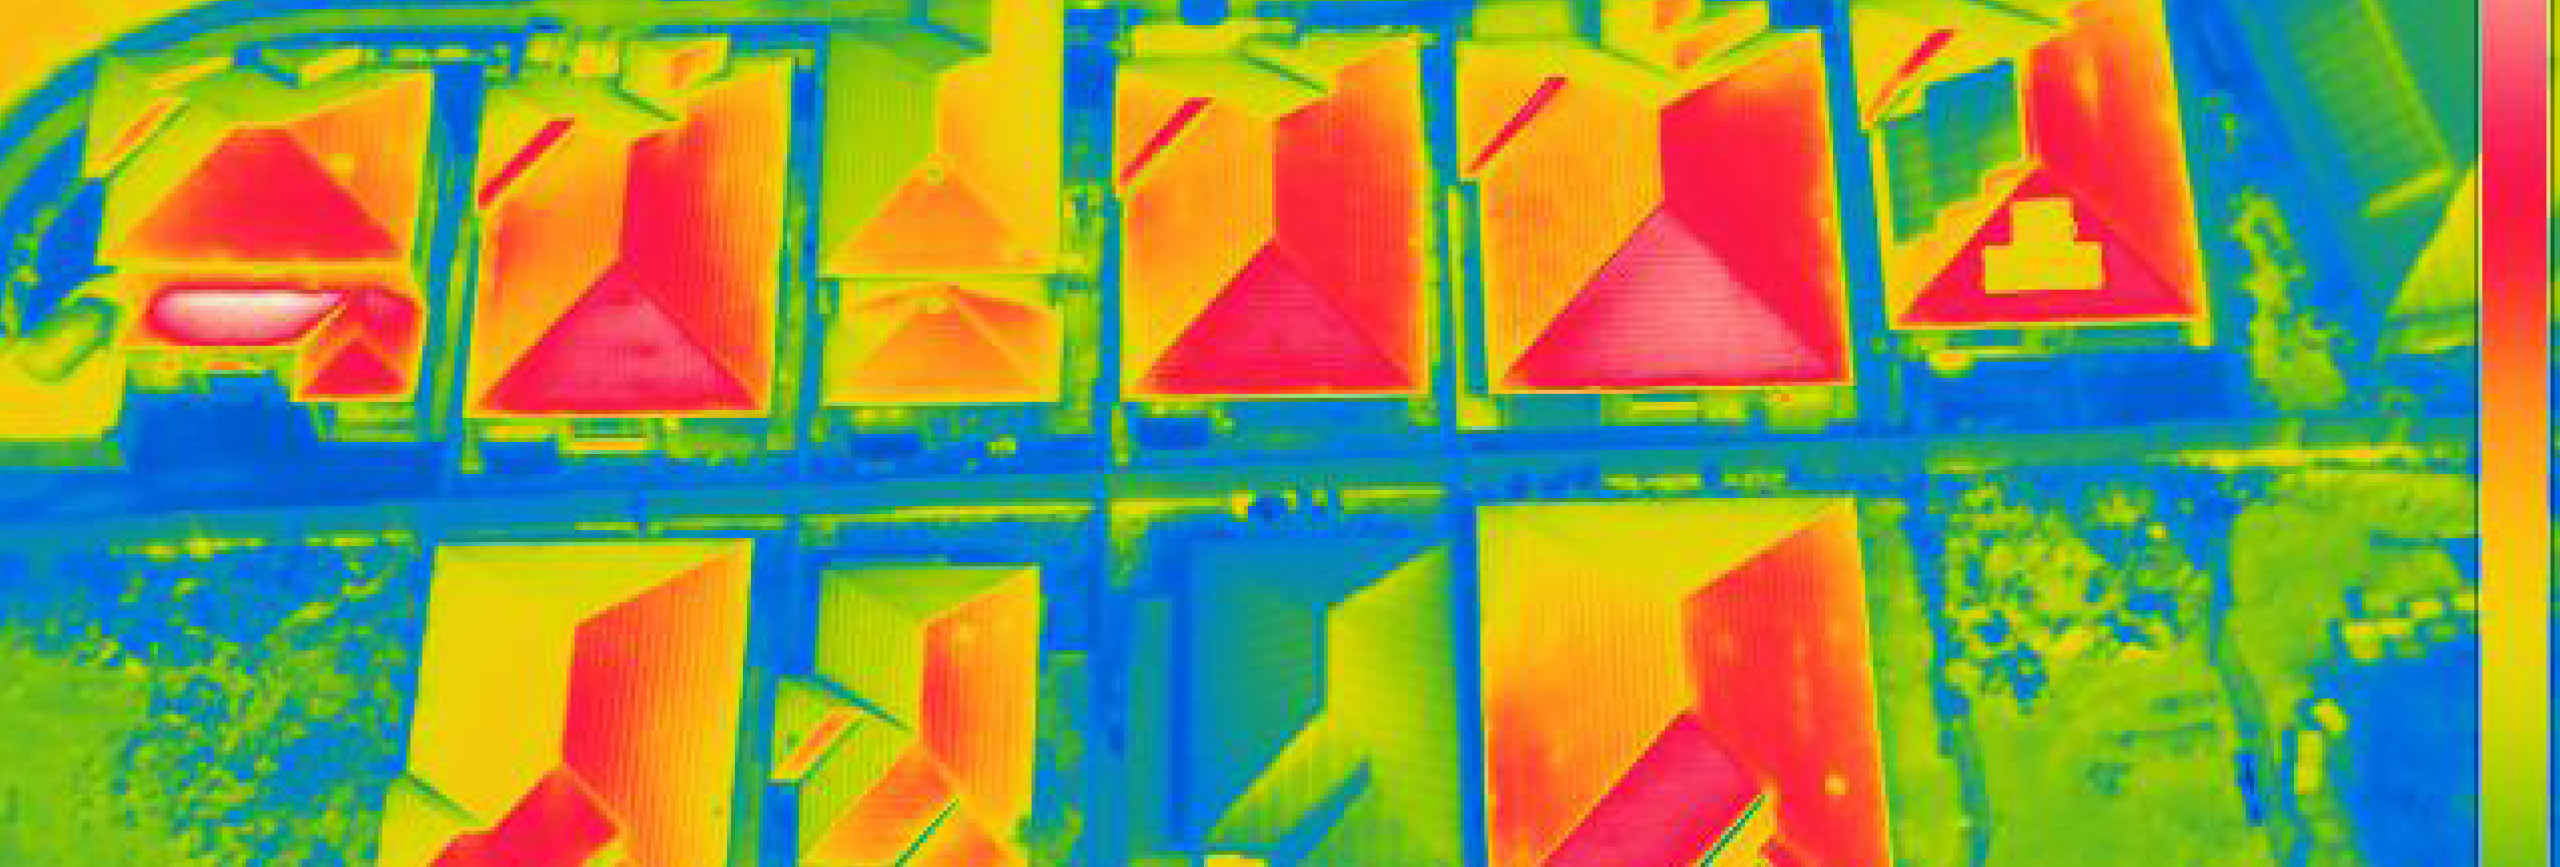 Heat map of urban rooftops